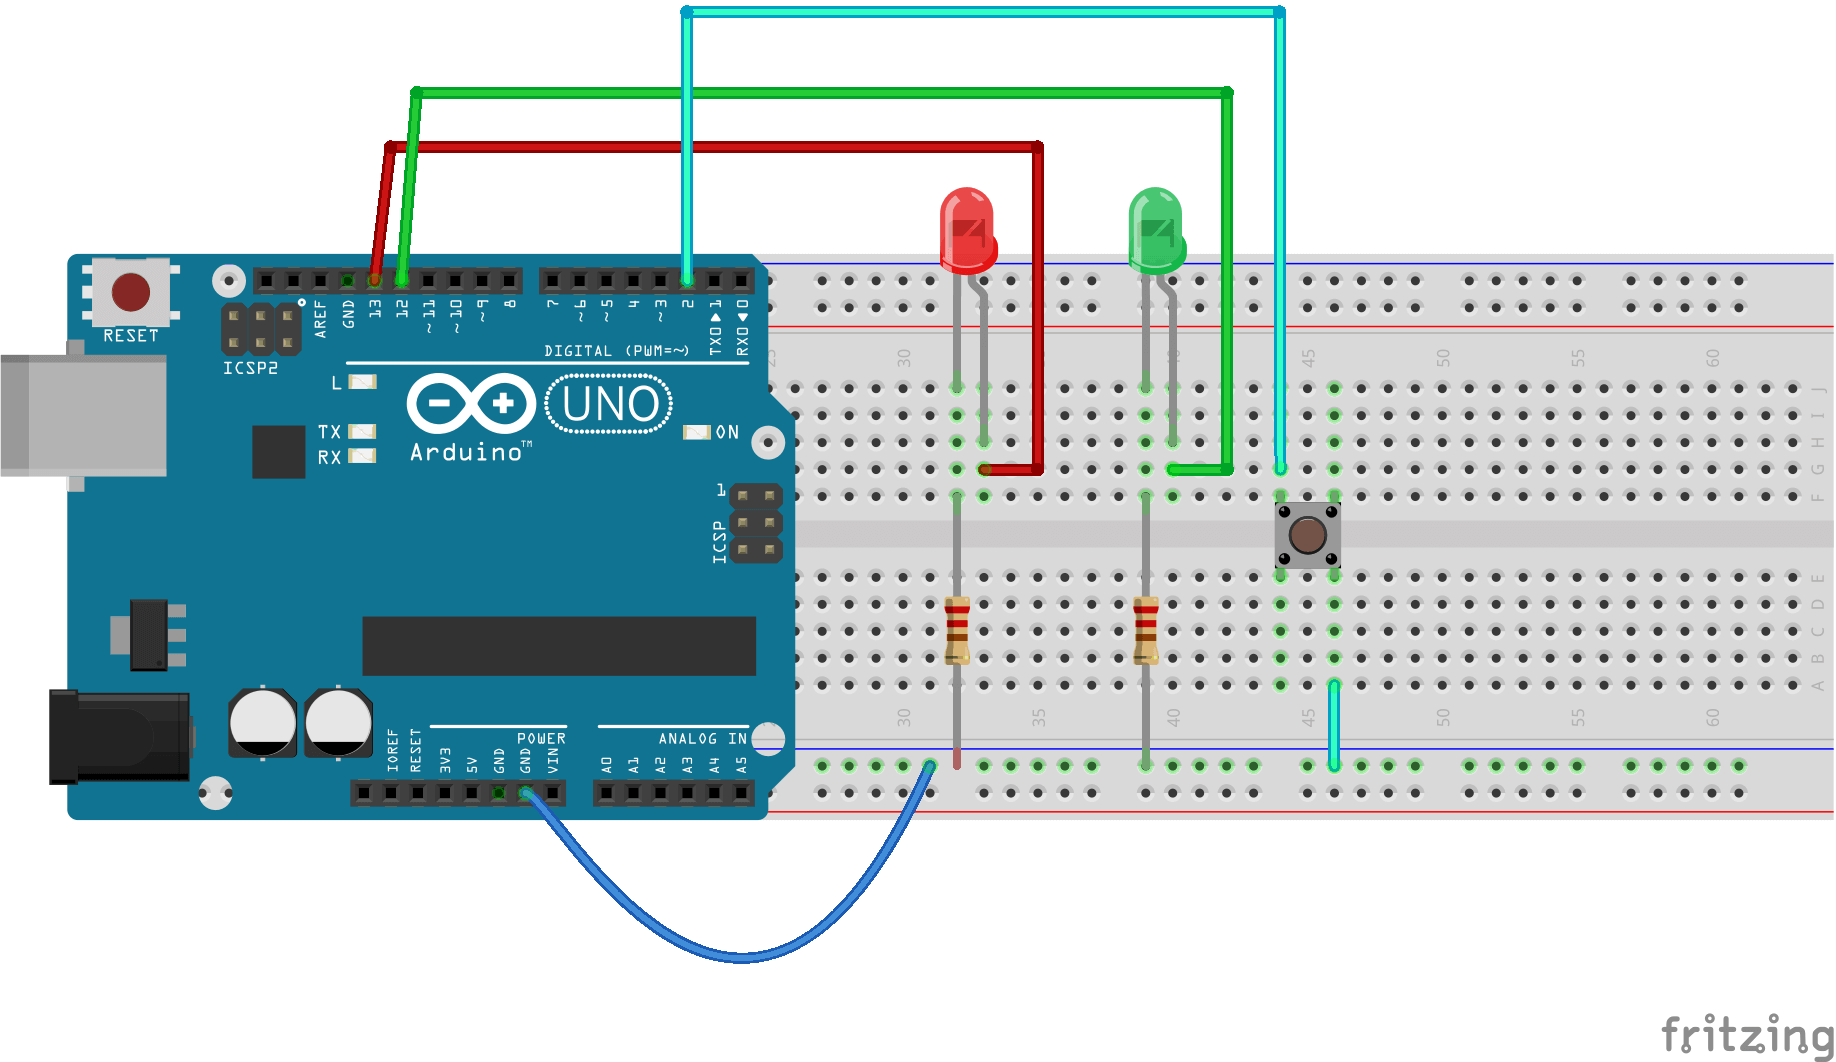 Make One Button Functionality Two Arduino moreover Series Parallel Wiring Diagram 12v in addition Diy Cuphead Costume Using Dollar Store Supplies in addition Rgb Led Strip Lighting Wiring Schematic moreover Low Cost Led Blinker. on christmas circuit arduino